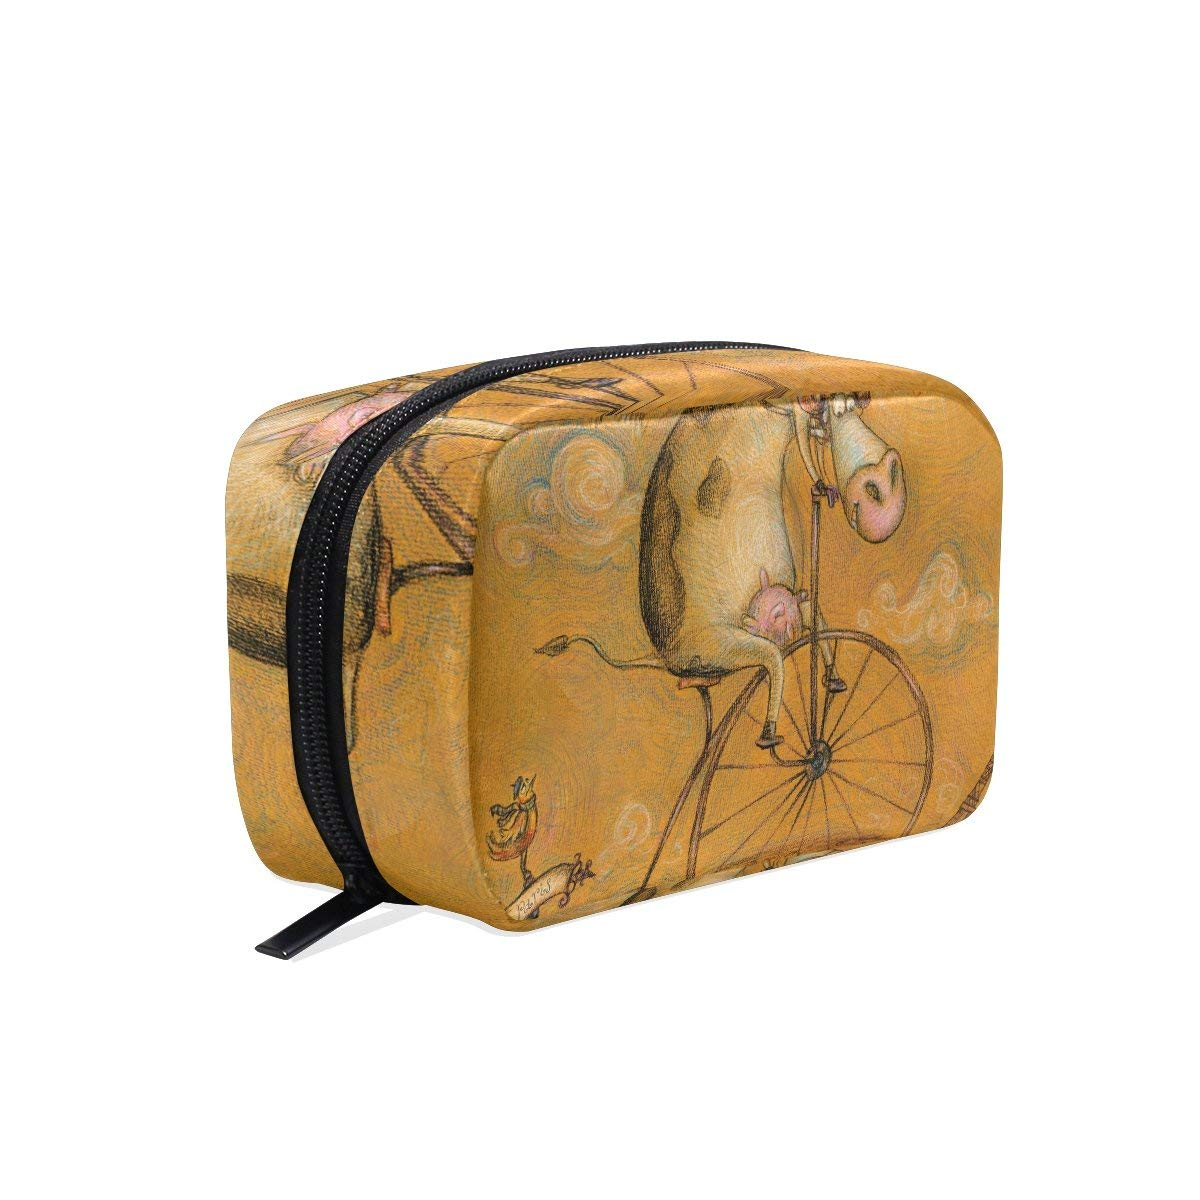 MAPOLO Vintage Cute Cow On The Bicycle Handy Cosmetic Pouch Clutch Makeup Bag Organizer Travel Bag